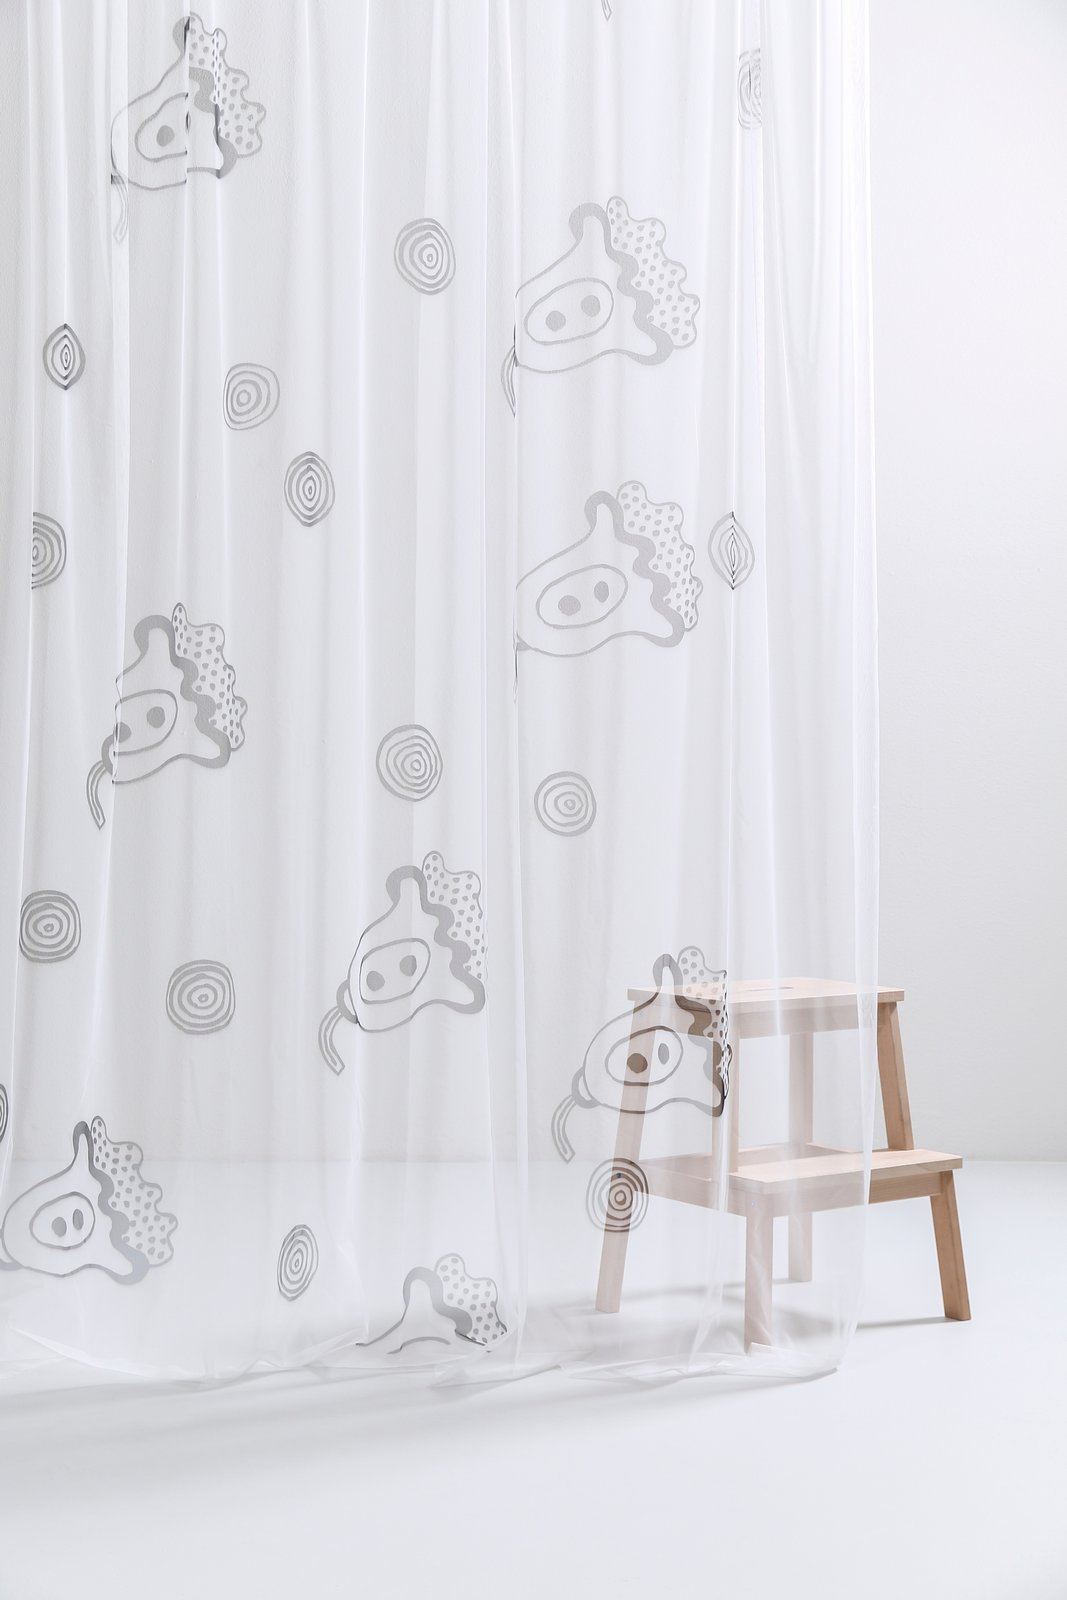 Also part of the CoopDPS collection are printed draperies that are made with an Italian woven tulle fabric. Shown here is the Provence curtain, which is inspired by the props that George and Nathalie are waving in their portrait above.  Photo 7 of 8 in Q&A With the Design Duo Behind a Playful Textile Collection